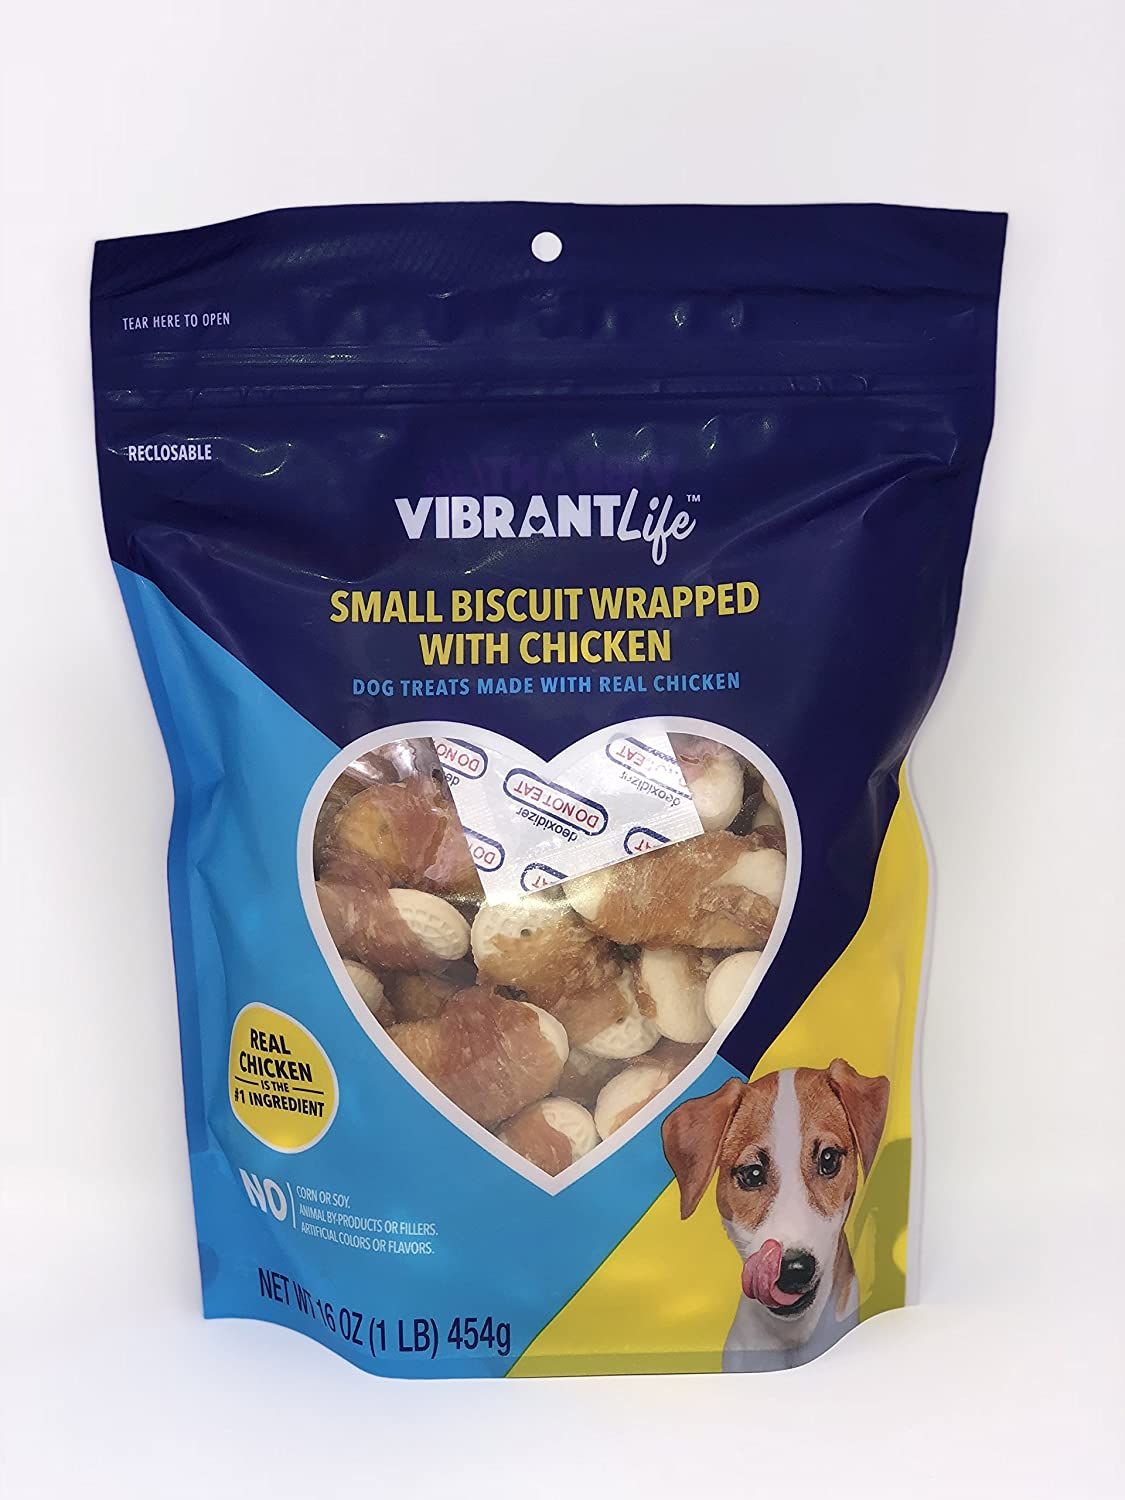 Vibrant Super popular specialty A surprise price is realized store Life Small Biscuit Wrapped with Treats Dog o 16 Chicken